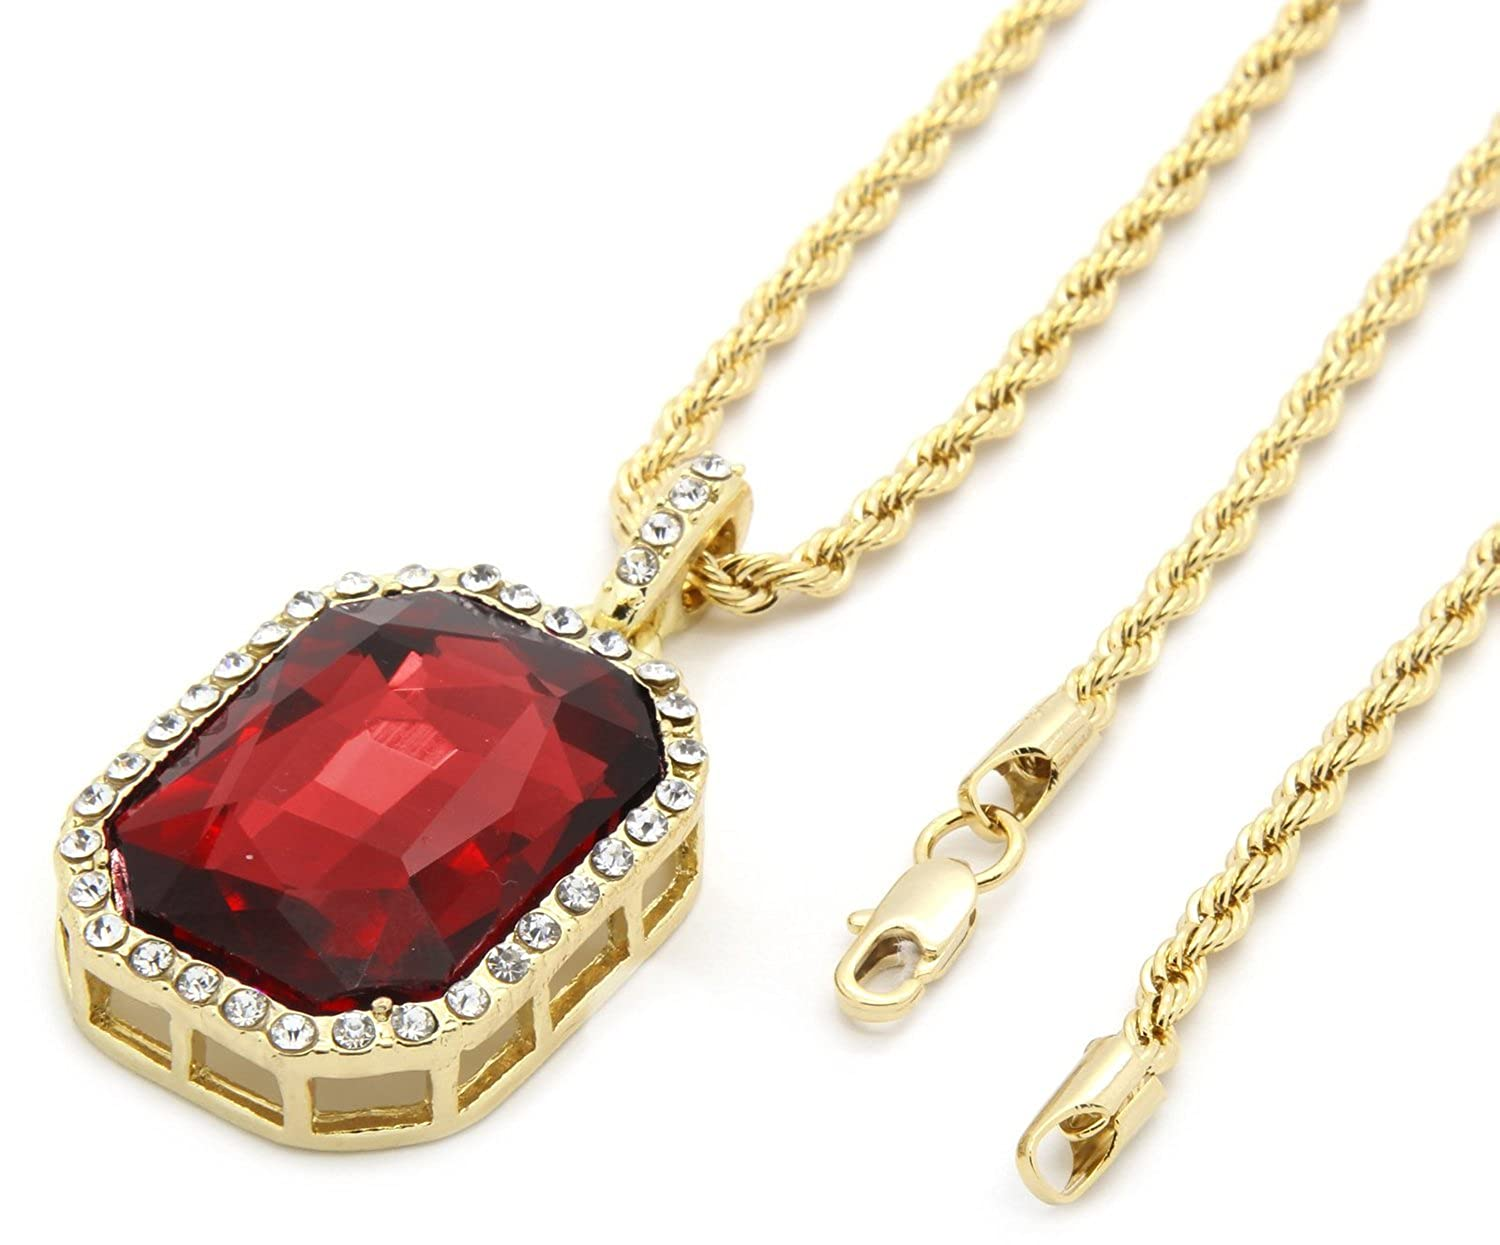 iced red ruby product necklace square style gold mens out high plated wholesale quality pendant